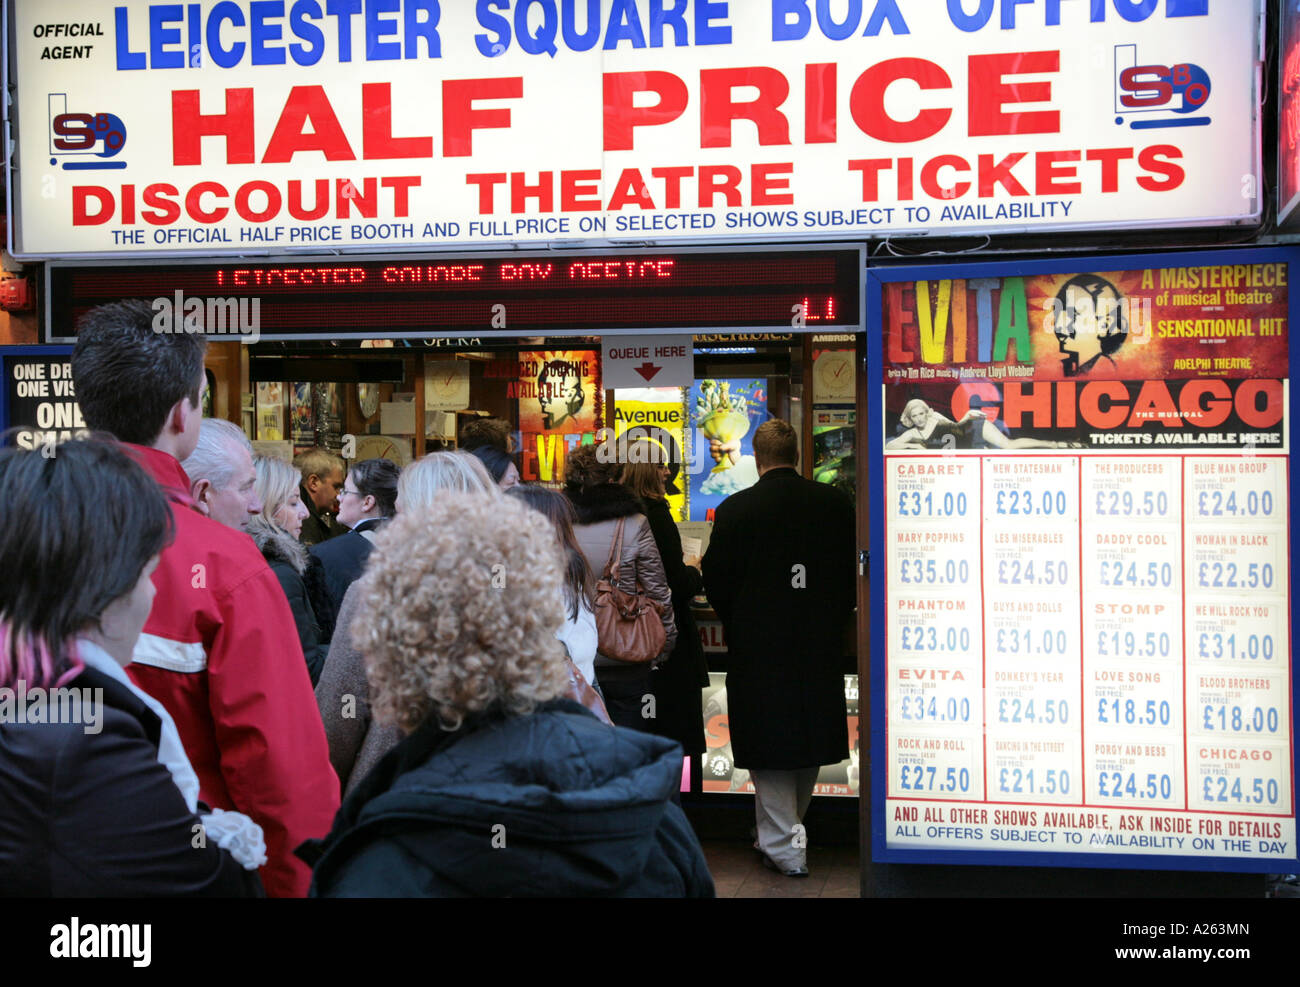 leicester square box office stock photos amp leicester